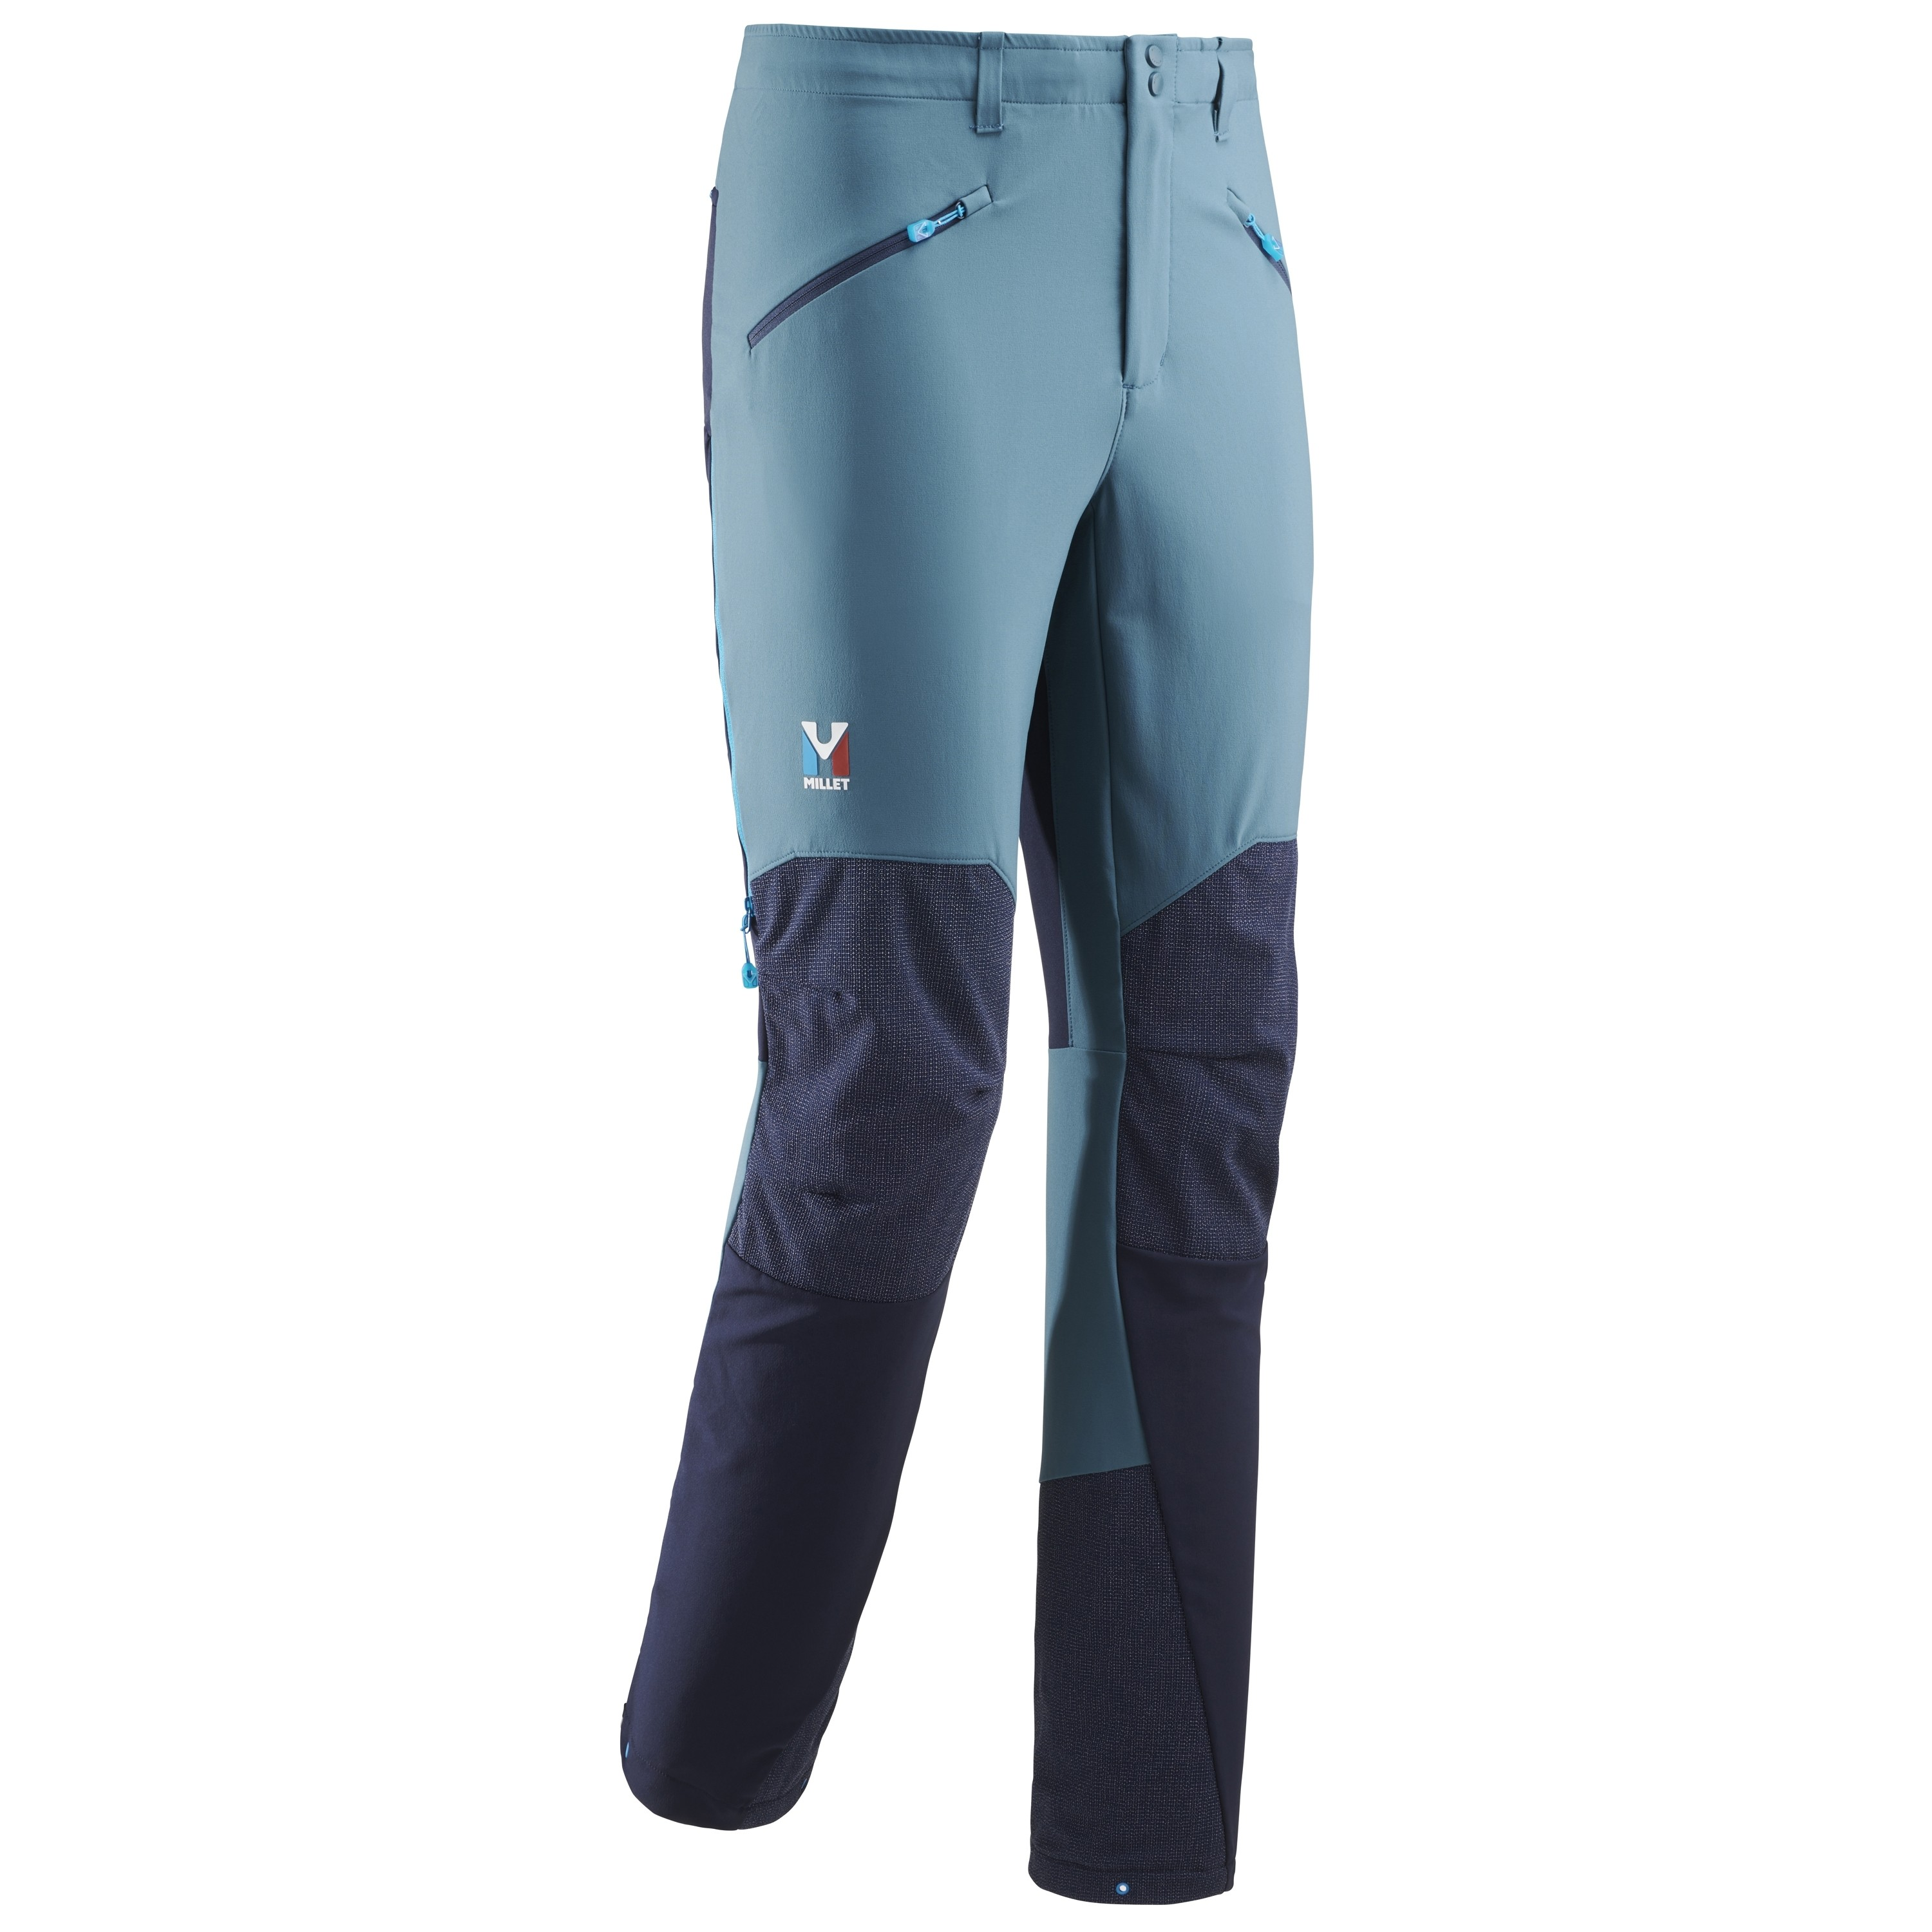 TRILOGY ADVANCED PRO PANT